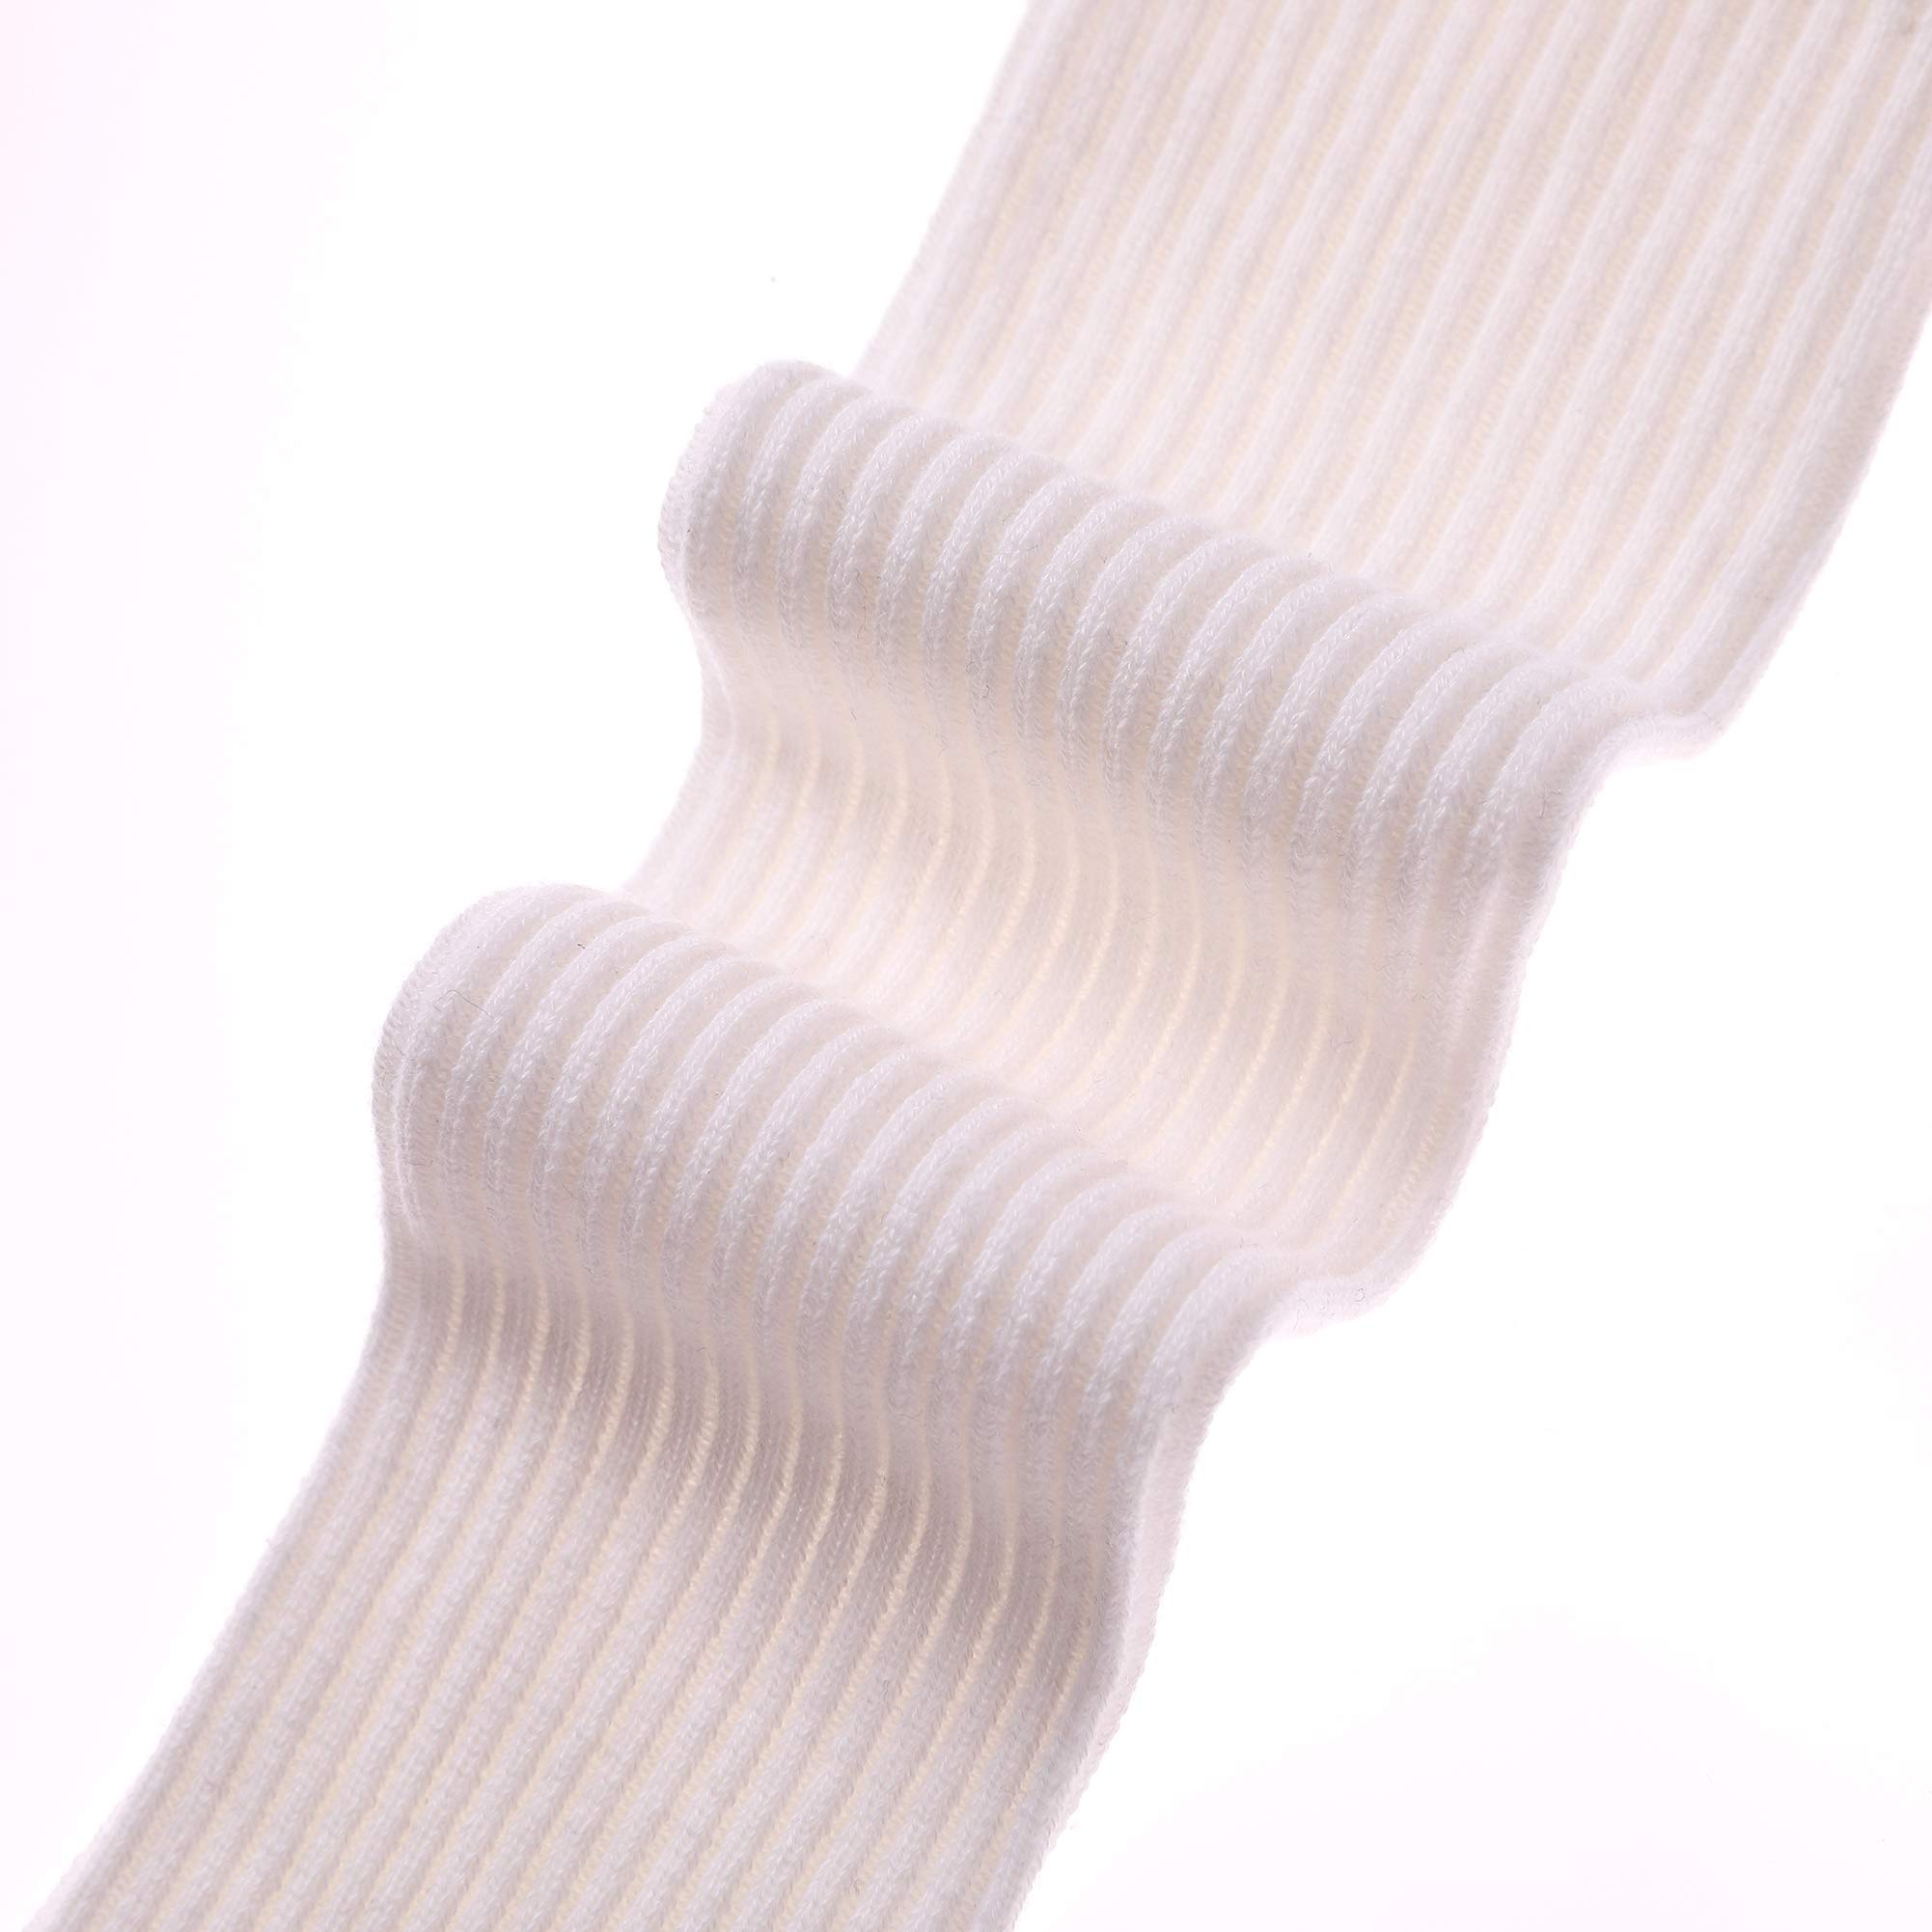 HERHILLY 3 Pack School Uniform Socks - Classic Stripe Cotton Over Knee-high Socks for Big Girls 3-12 Year old (9-12 Year Old, 3 Pack White) by HERHILLY (Image #6)